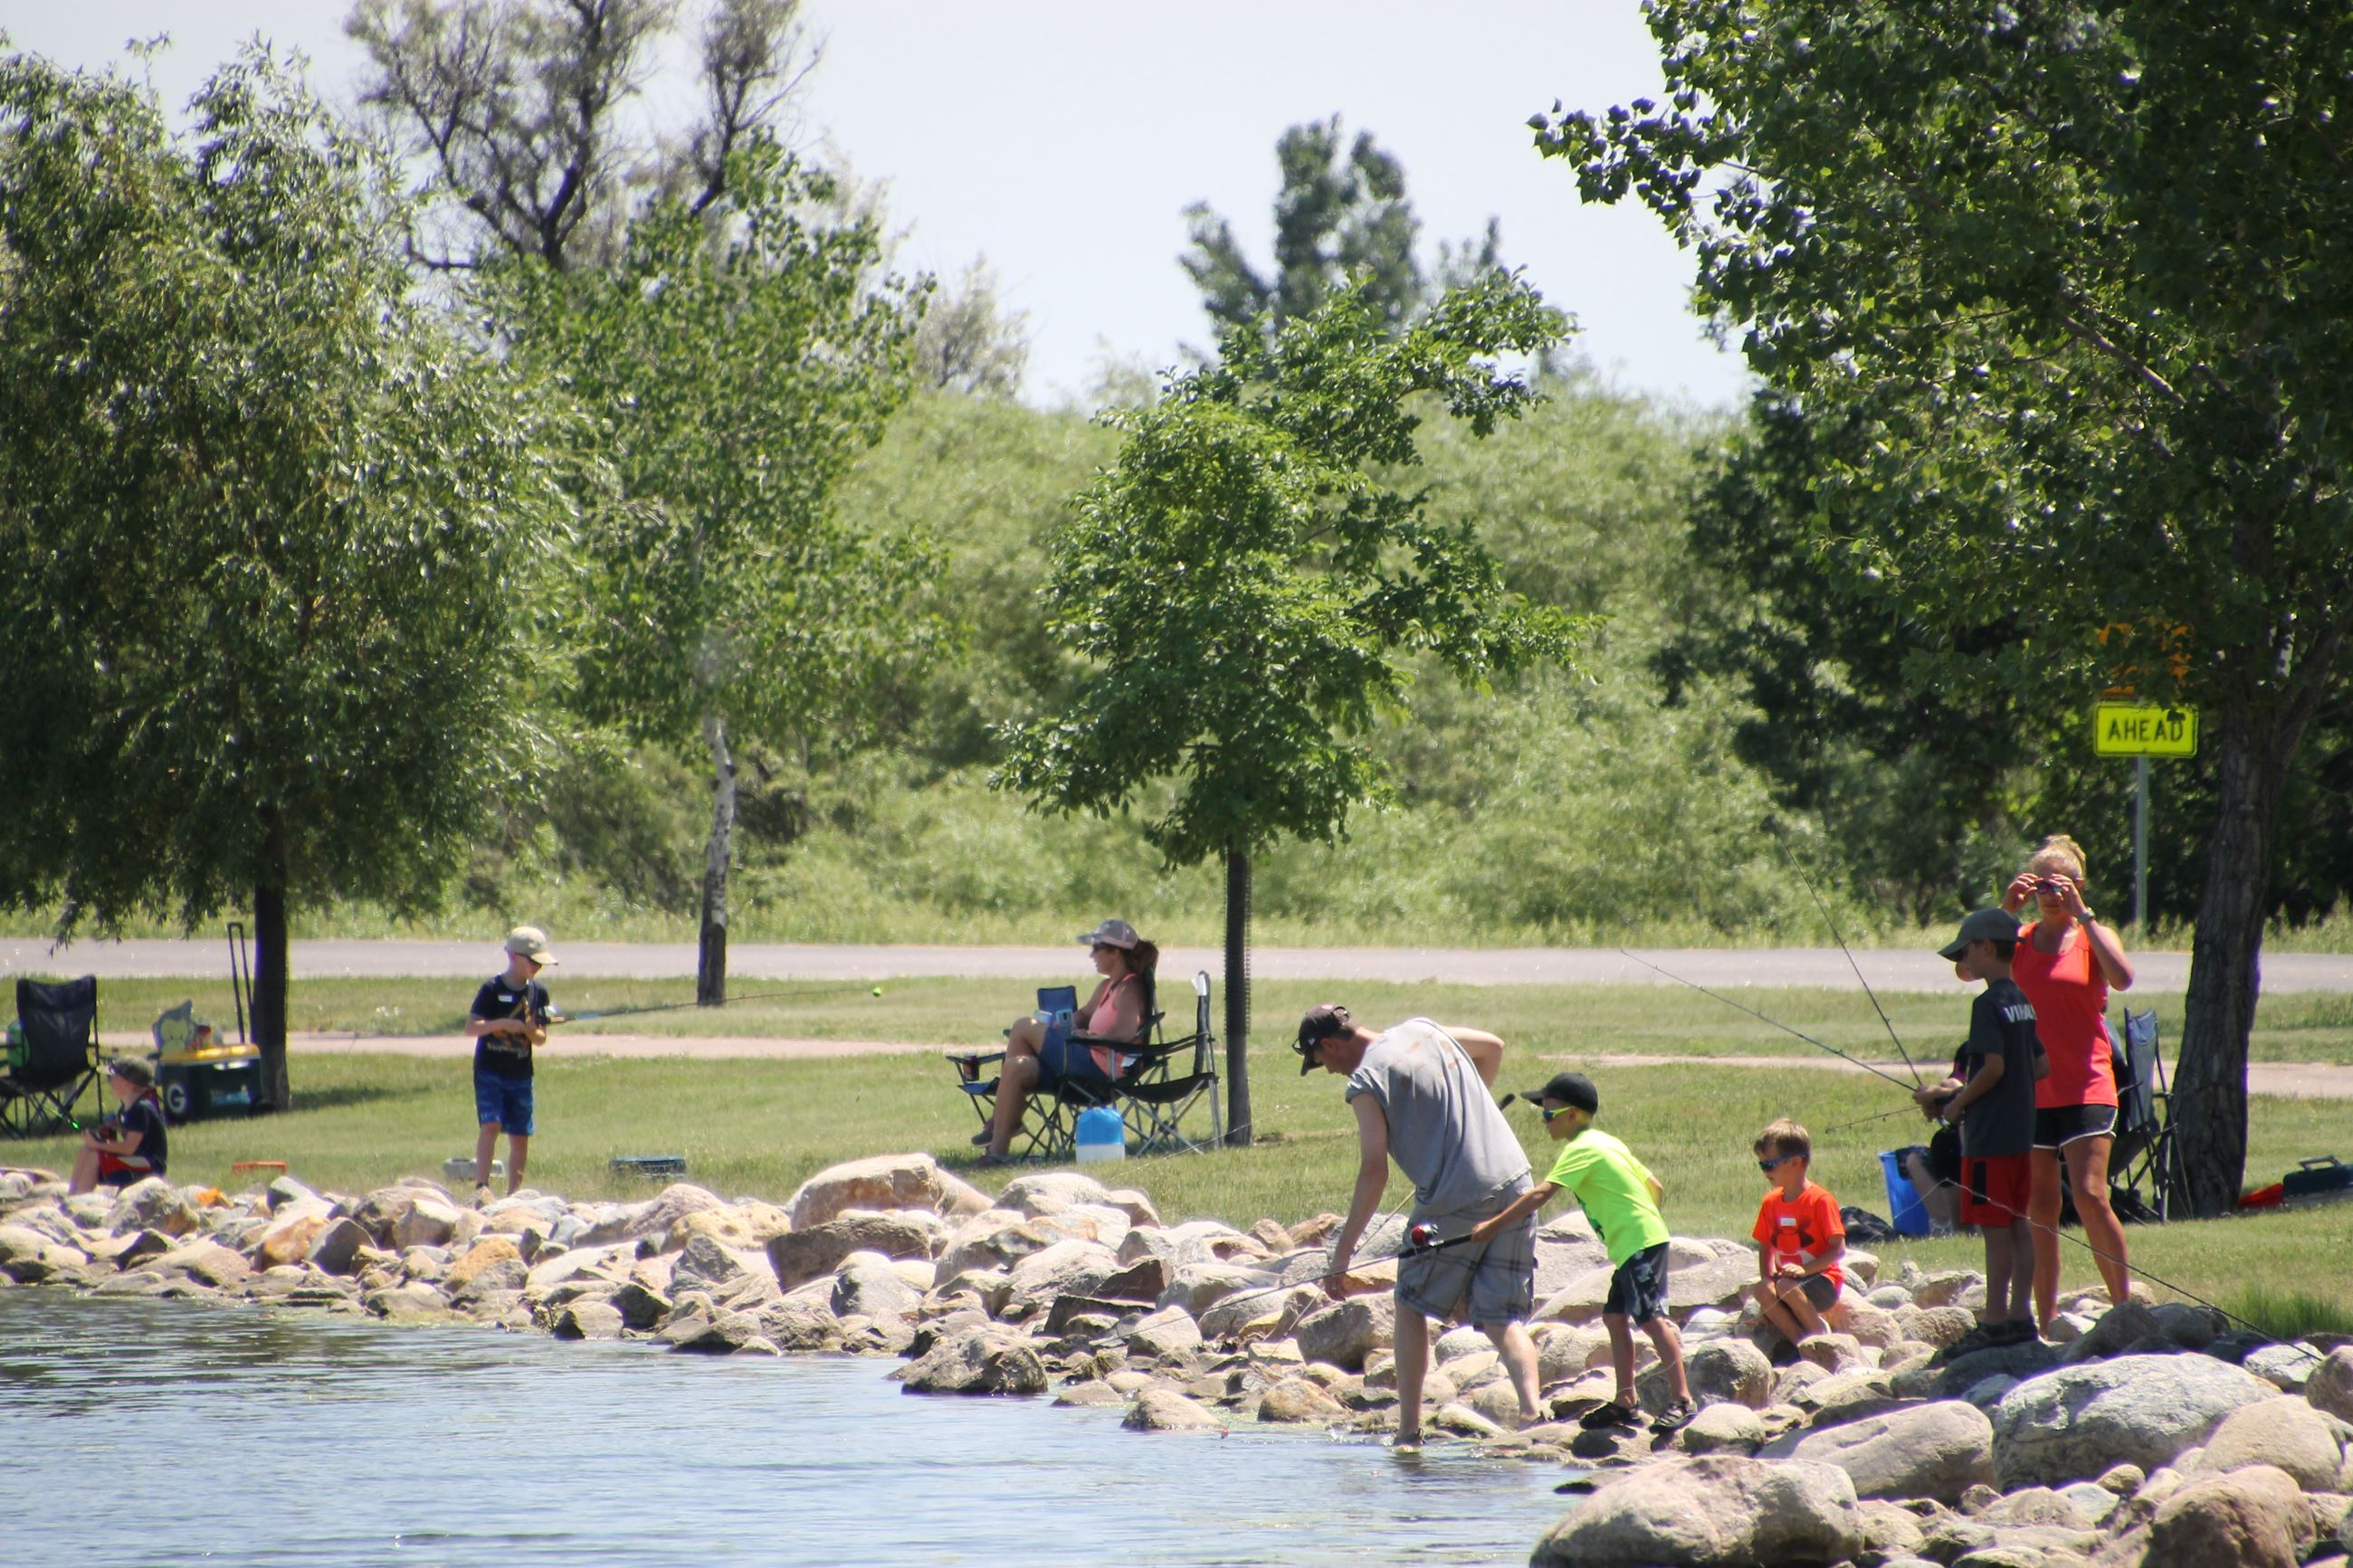 Families standing and sitting around the edge of the lake fishing